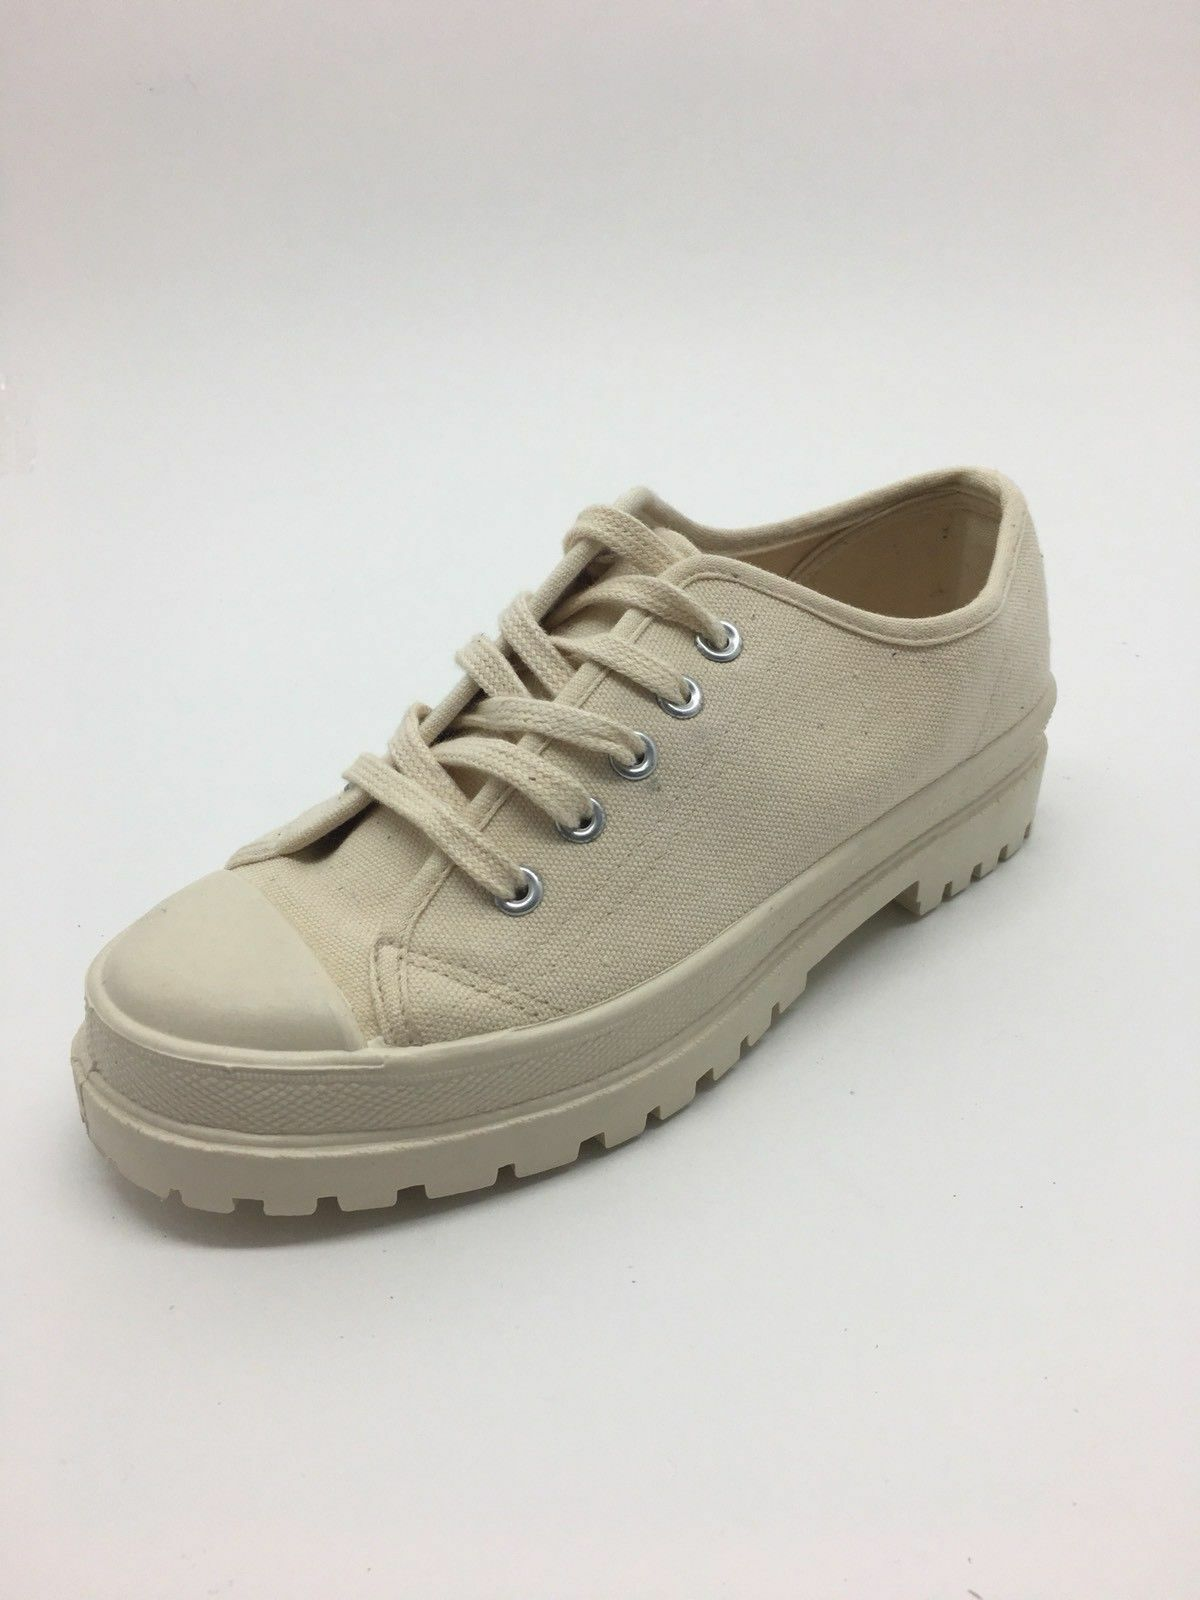 PASSPORTS retro-style Sneakers Tennis Platform SHOES 2  Heel